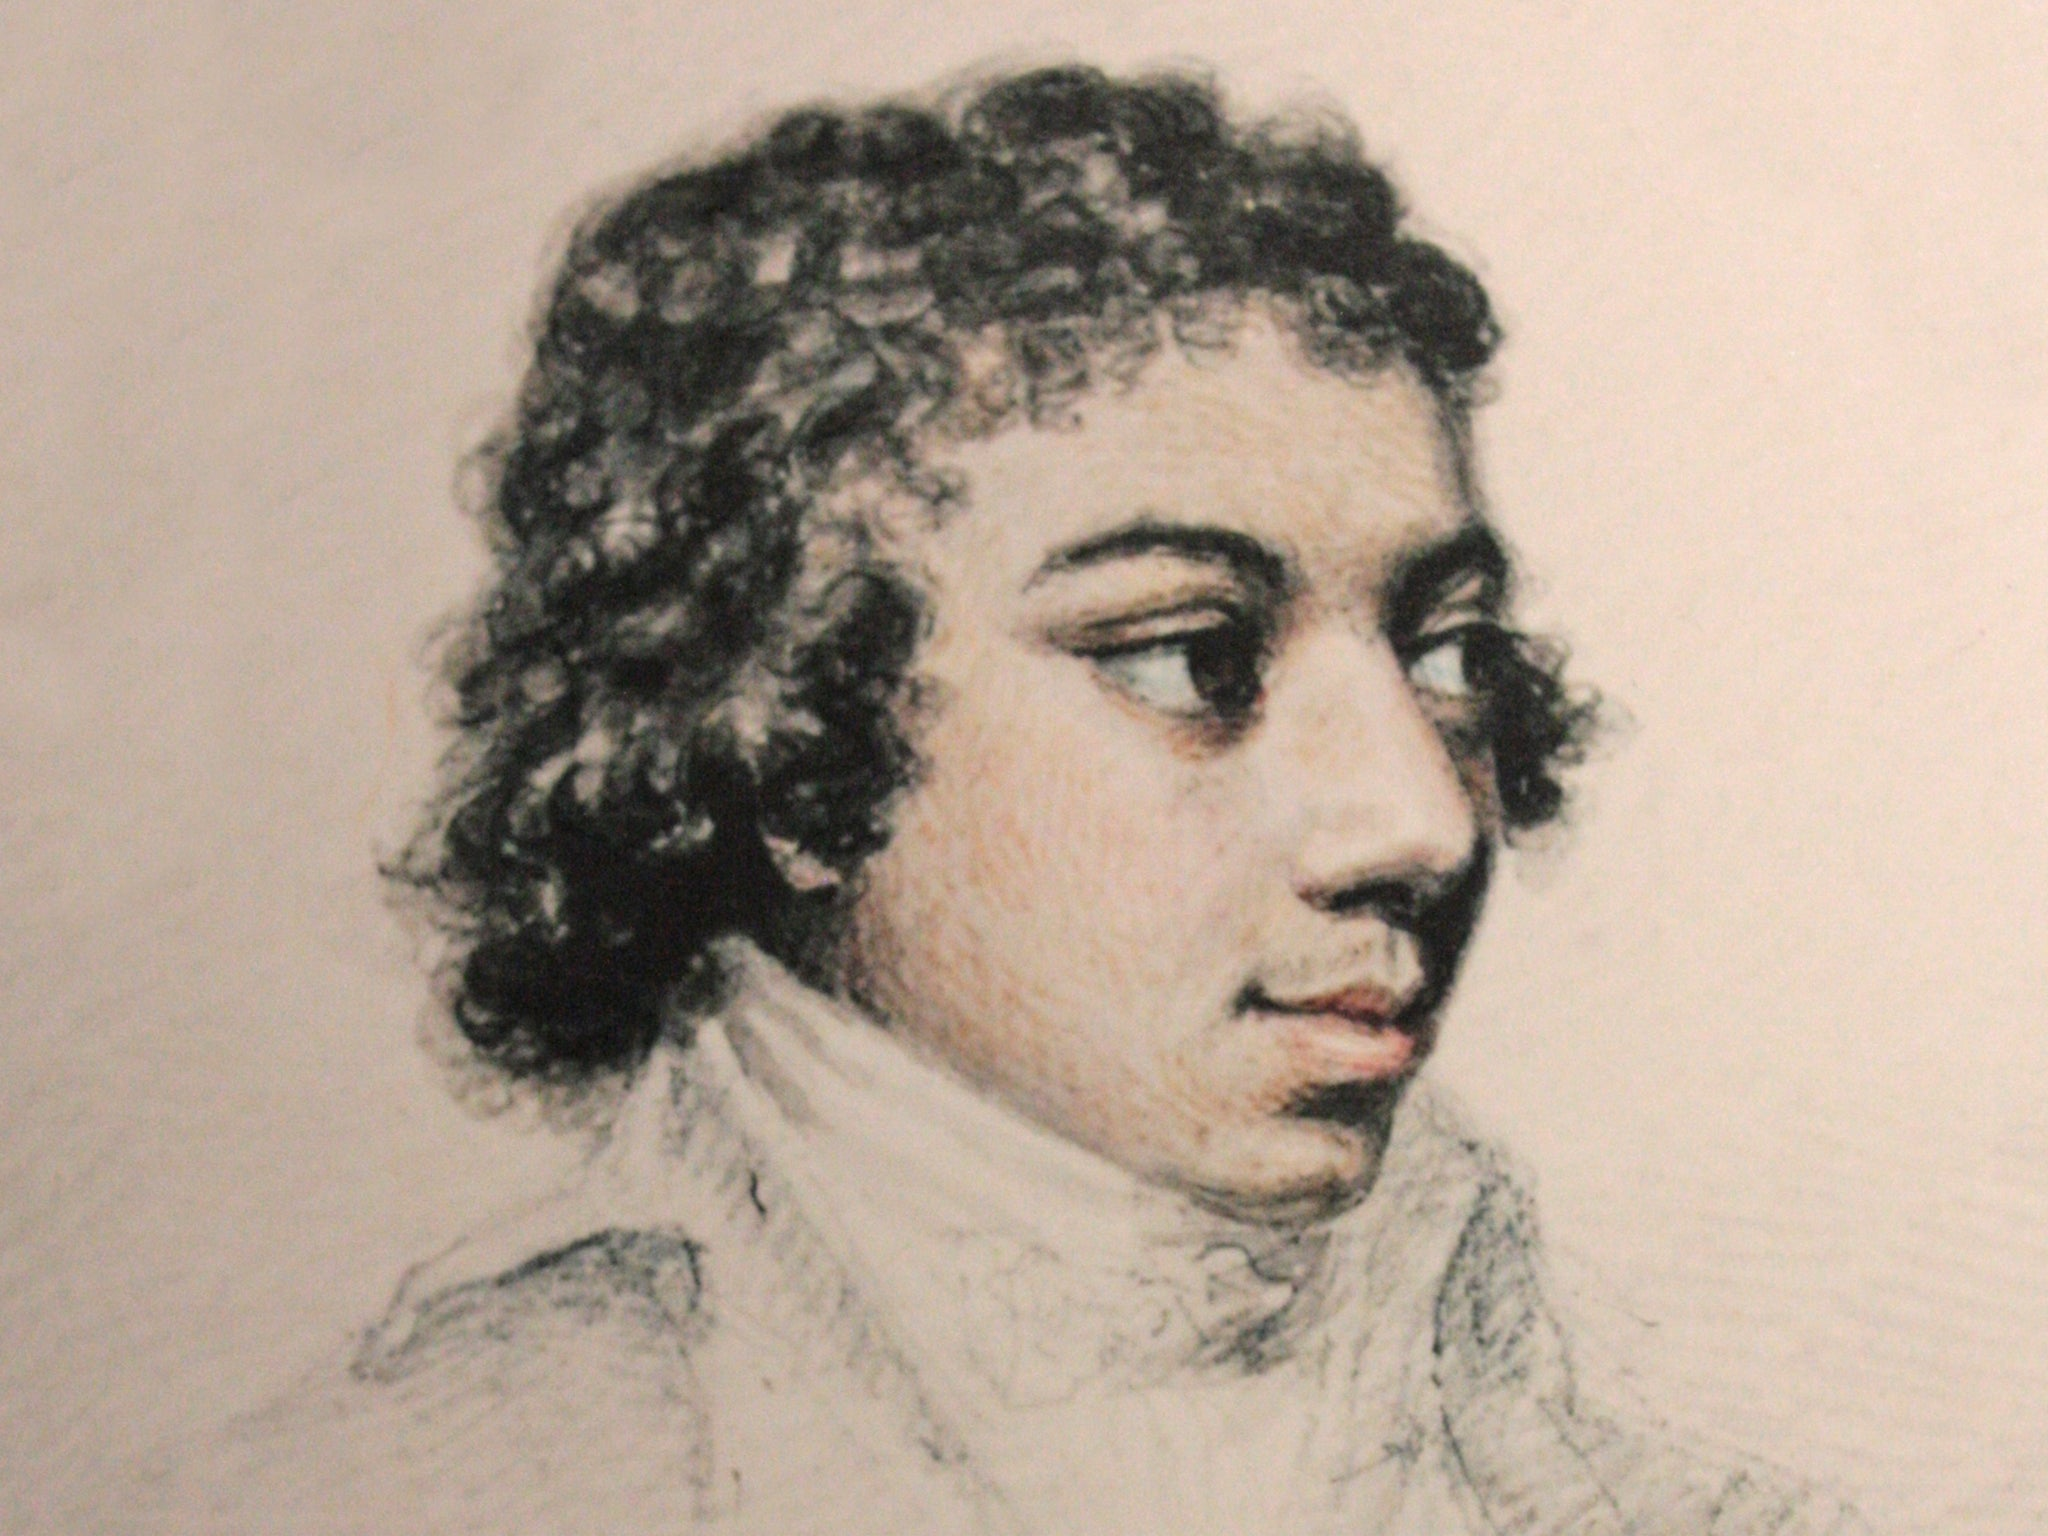 The forgotten Black violinist who inspired Beethoven